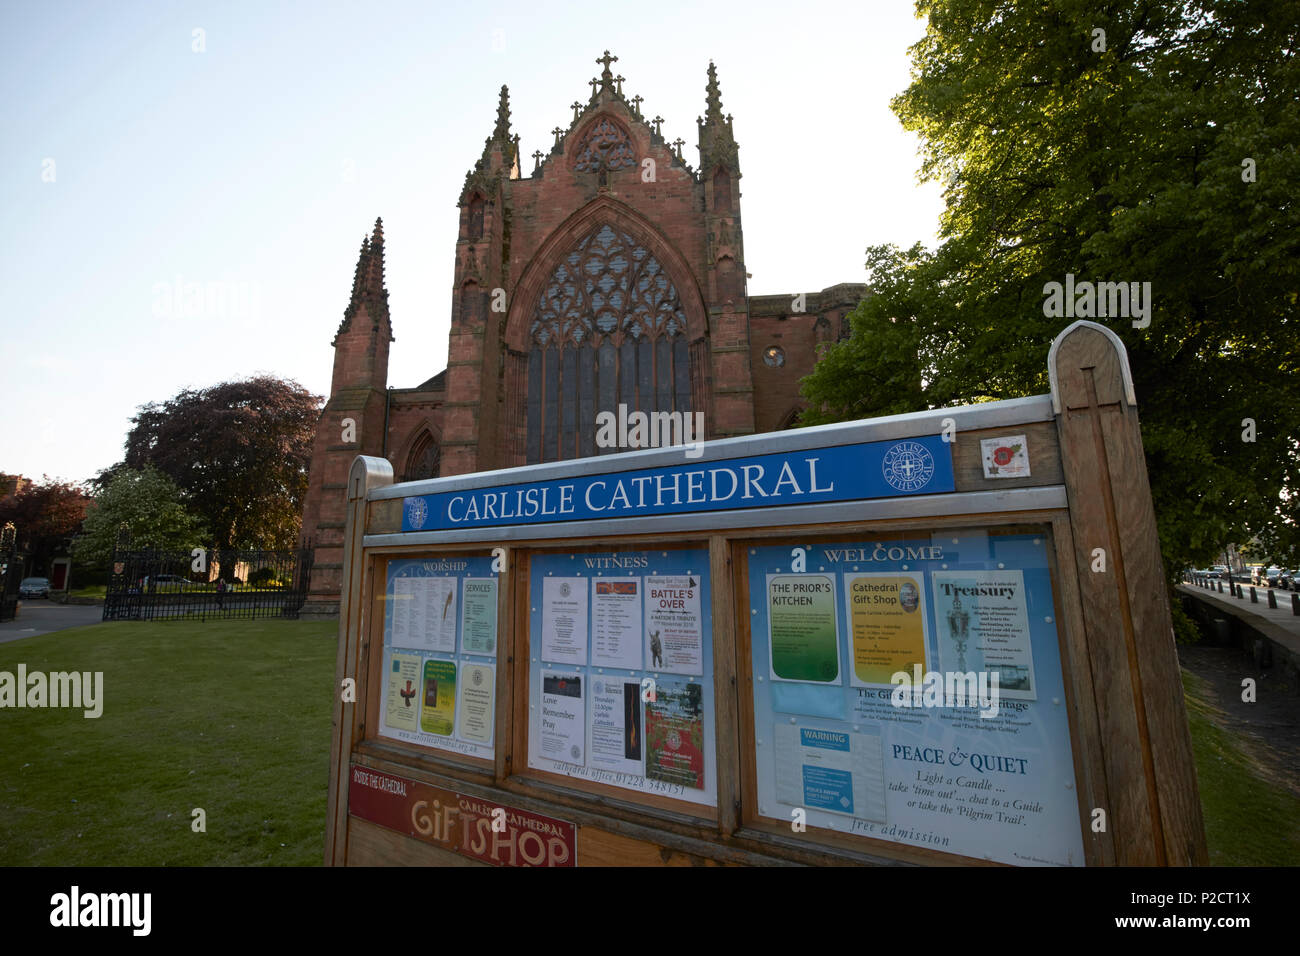 Carlisle cathedral noticeboard in late evening Cumbria England UK - Stock Image